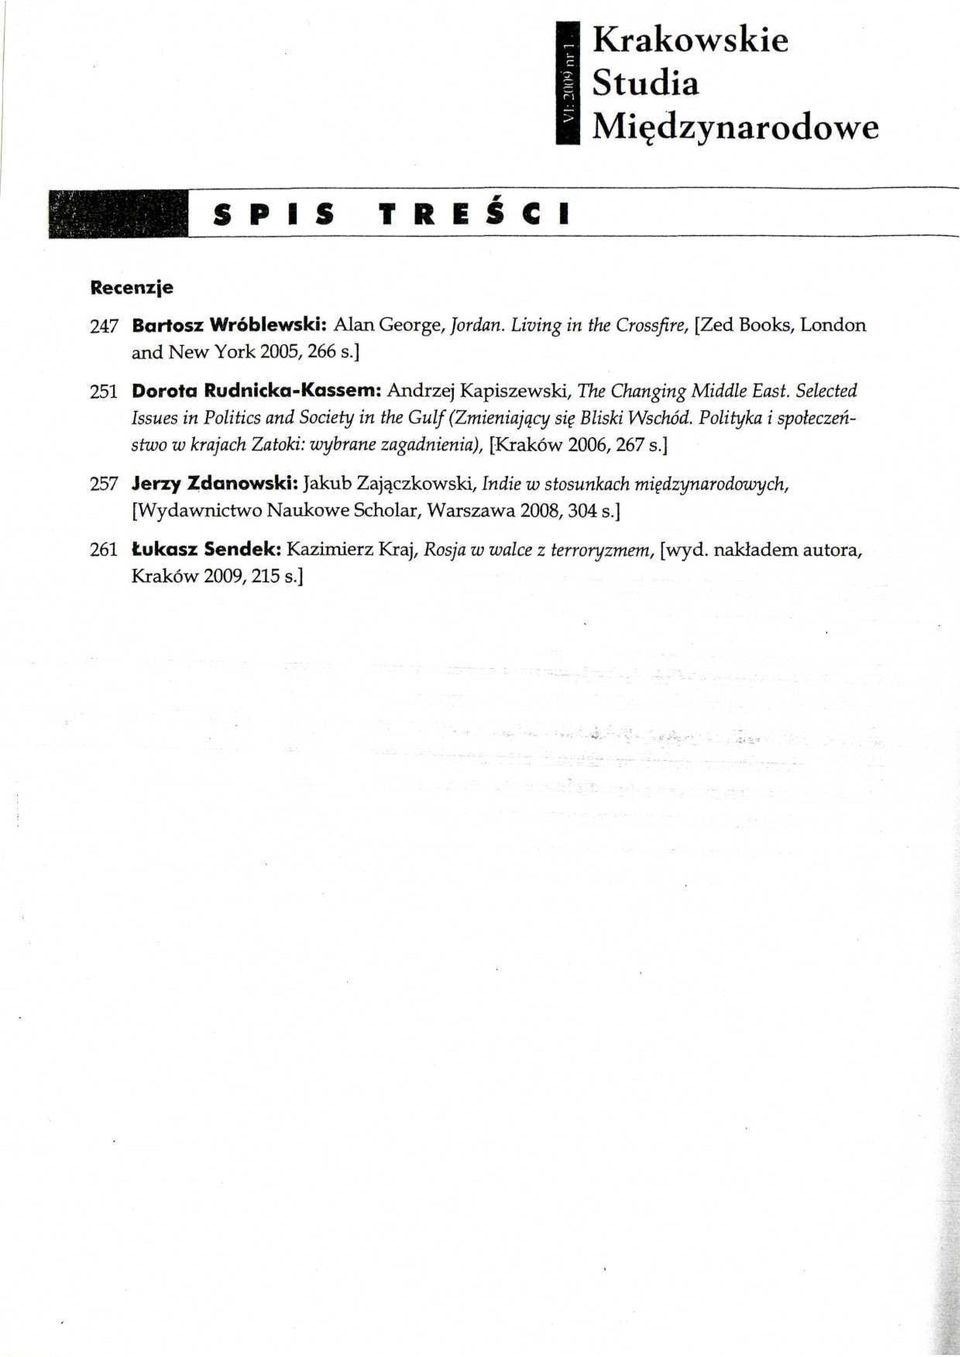 Selected Issues in Politics and Society in the Gulf (Zmieniający się Bliski Wschód.